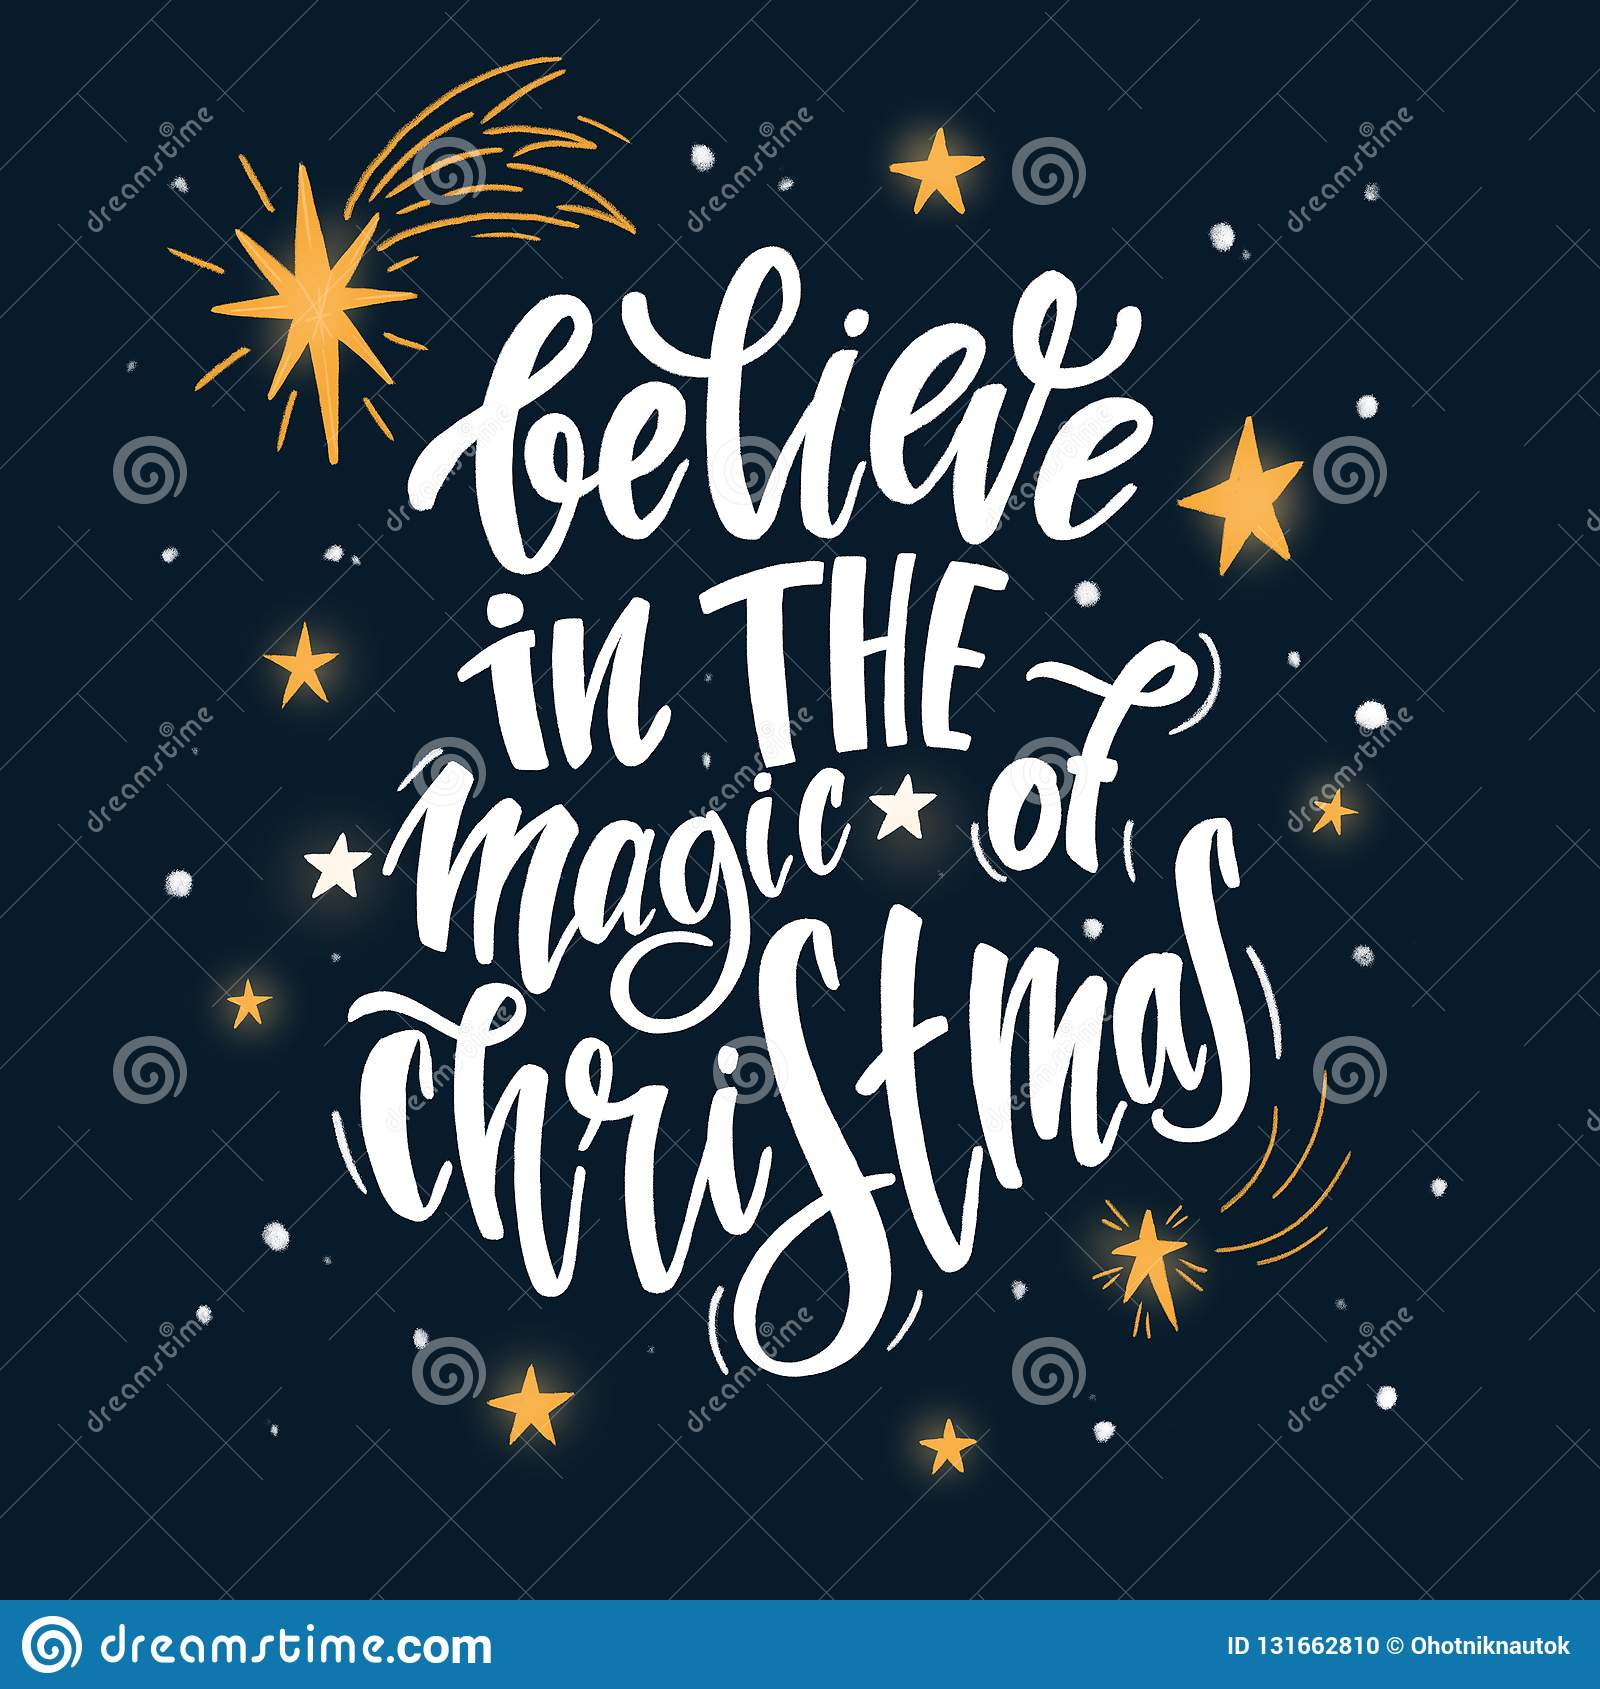 Magic Of Christmas.Believe In The Magic Of Christmas Stock Illustration